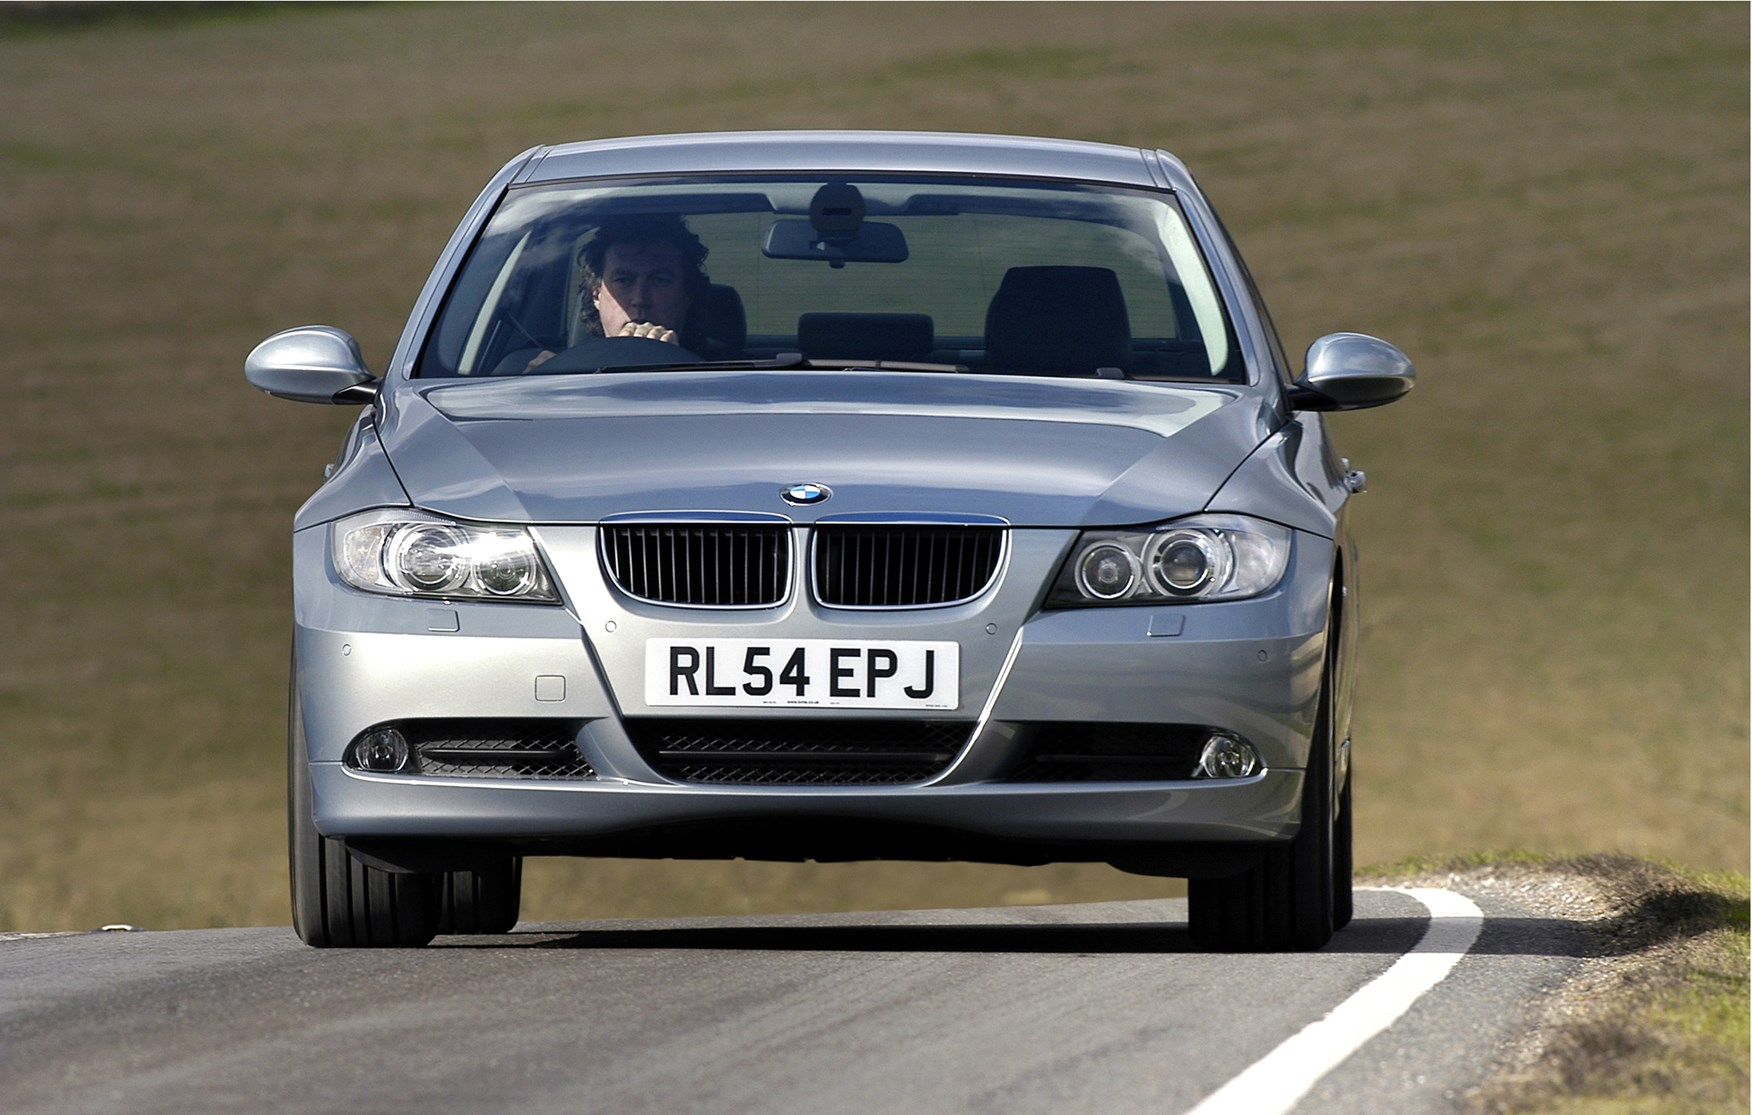 Used BMW 3-Series Saloon (2005 - 2011) Practicality | Parkers